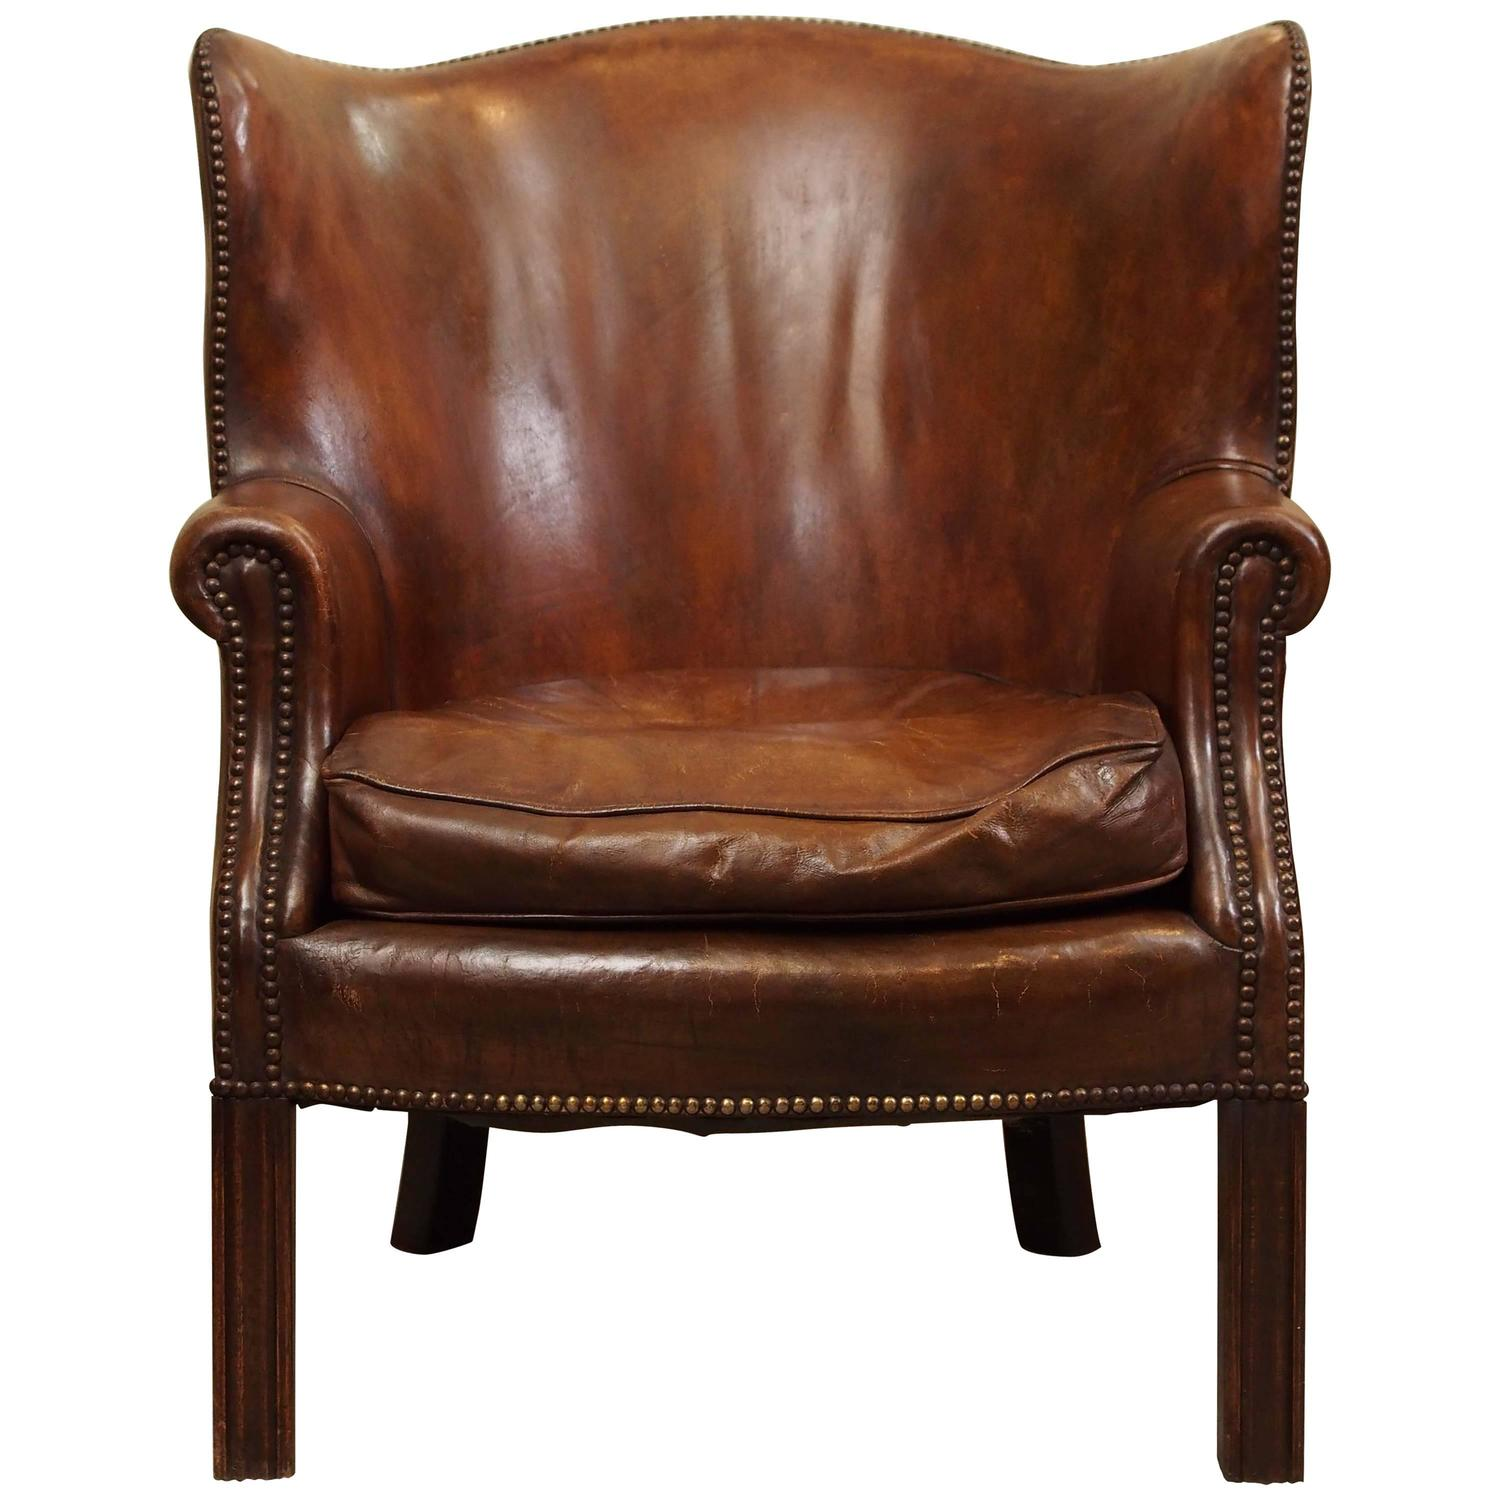 Antique English Mahogany Leather Library Chair At 1stdibs